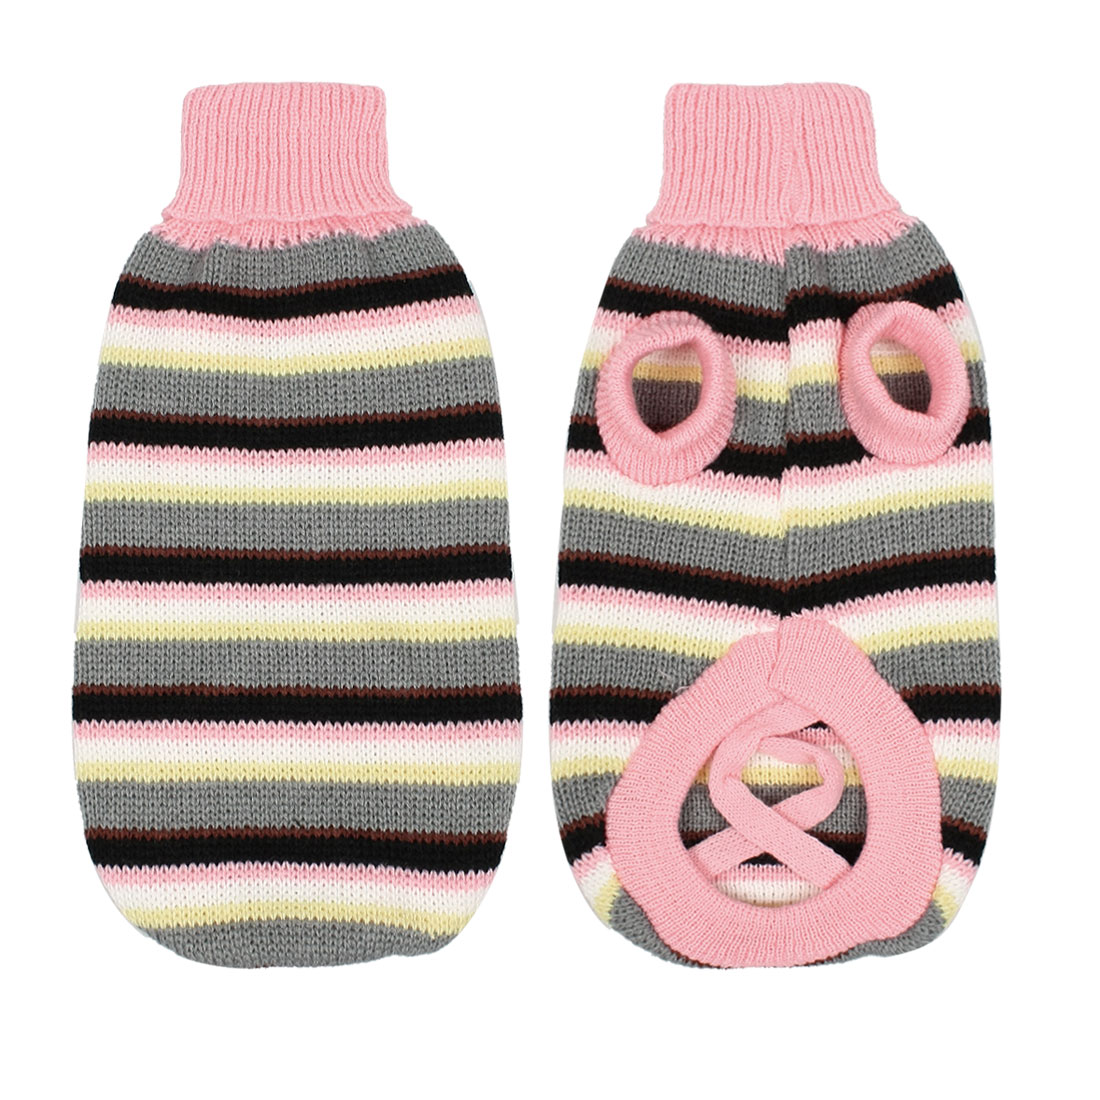 Pet Dog Clothes Sweater Apparel Pink Winter Multicolor Striped Knitwear S